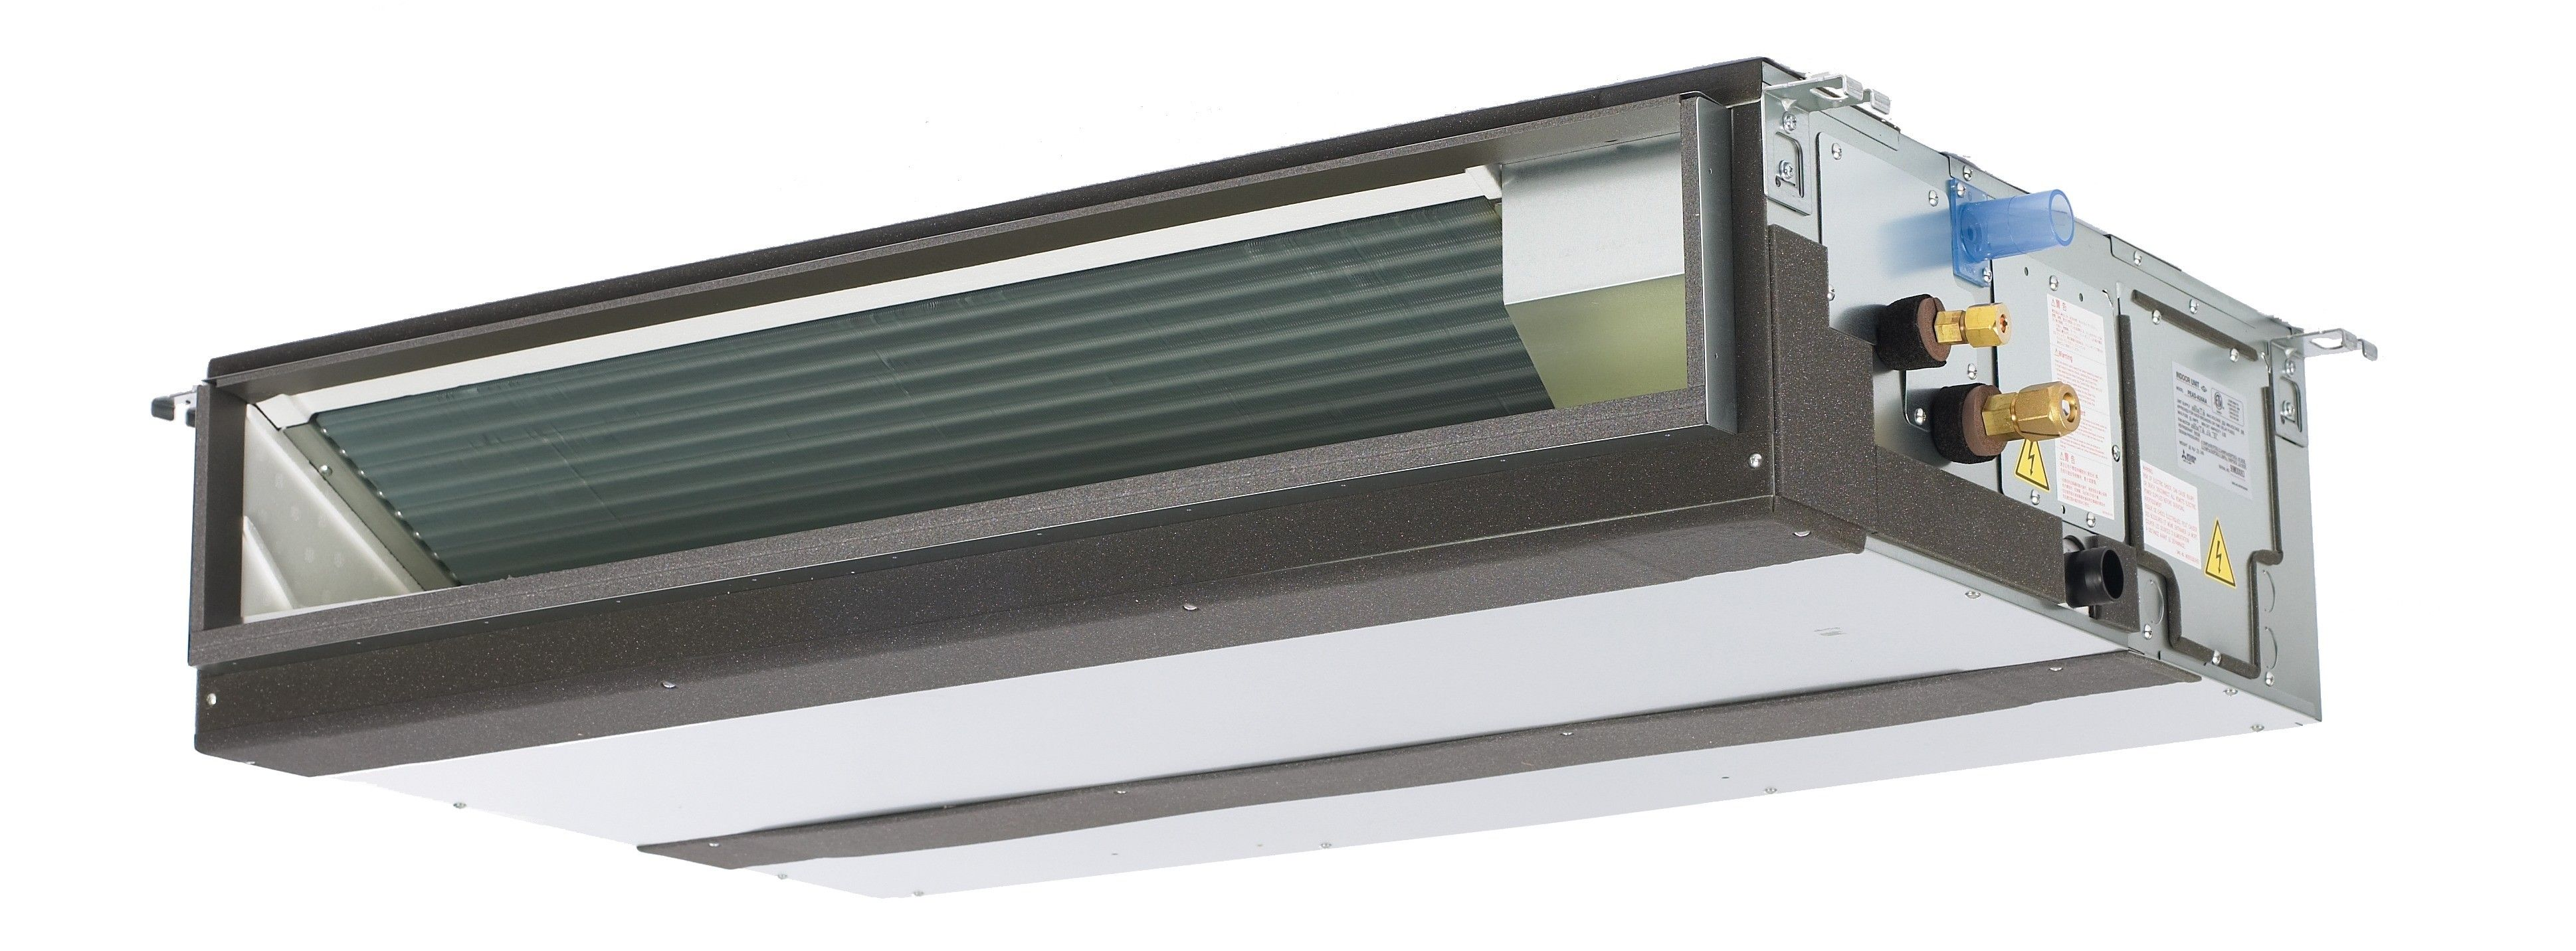 Duct Split Unit : K btu mitsubishi pead horizontal ducted indoor unit in